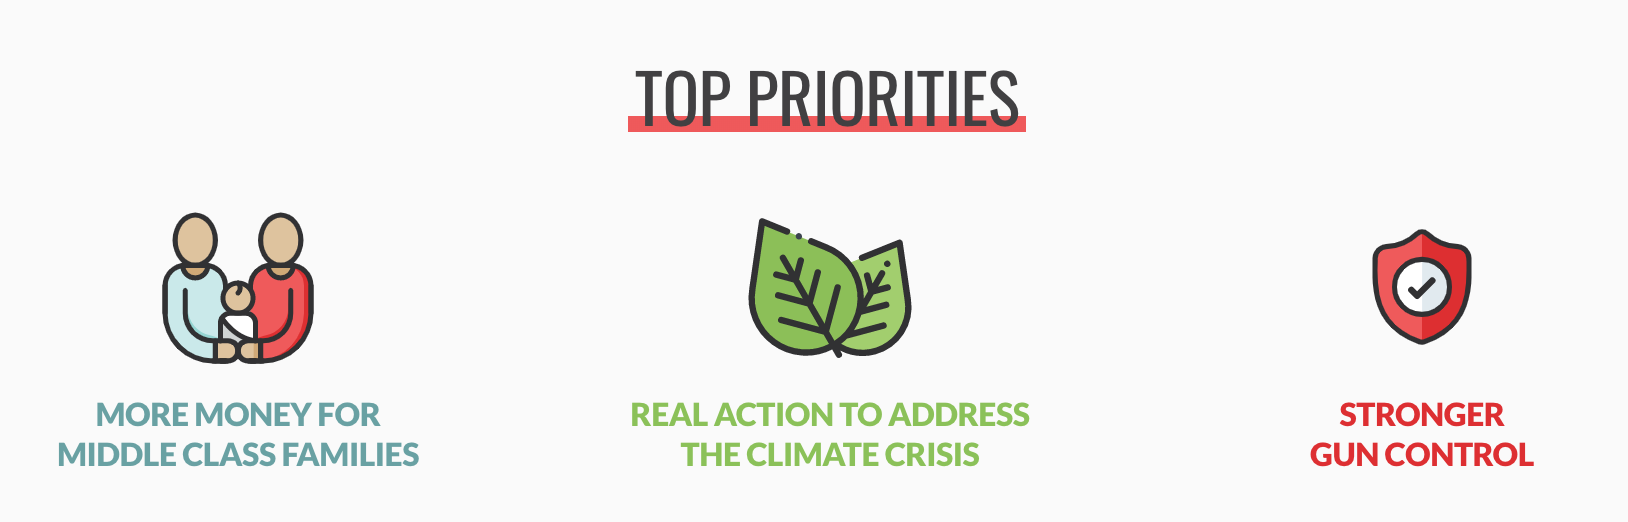 Canadian Liberal top three priorities of middle class, climate action and gun control